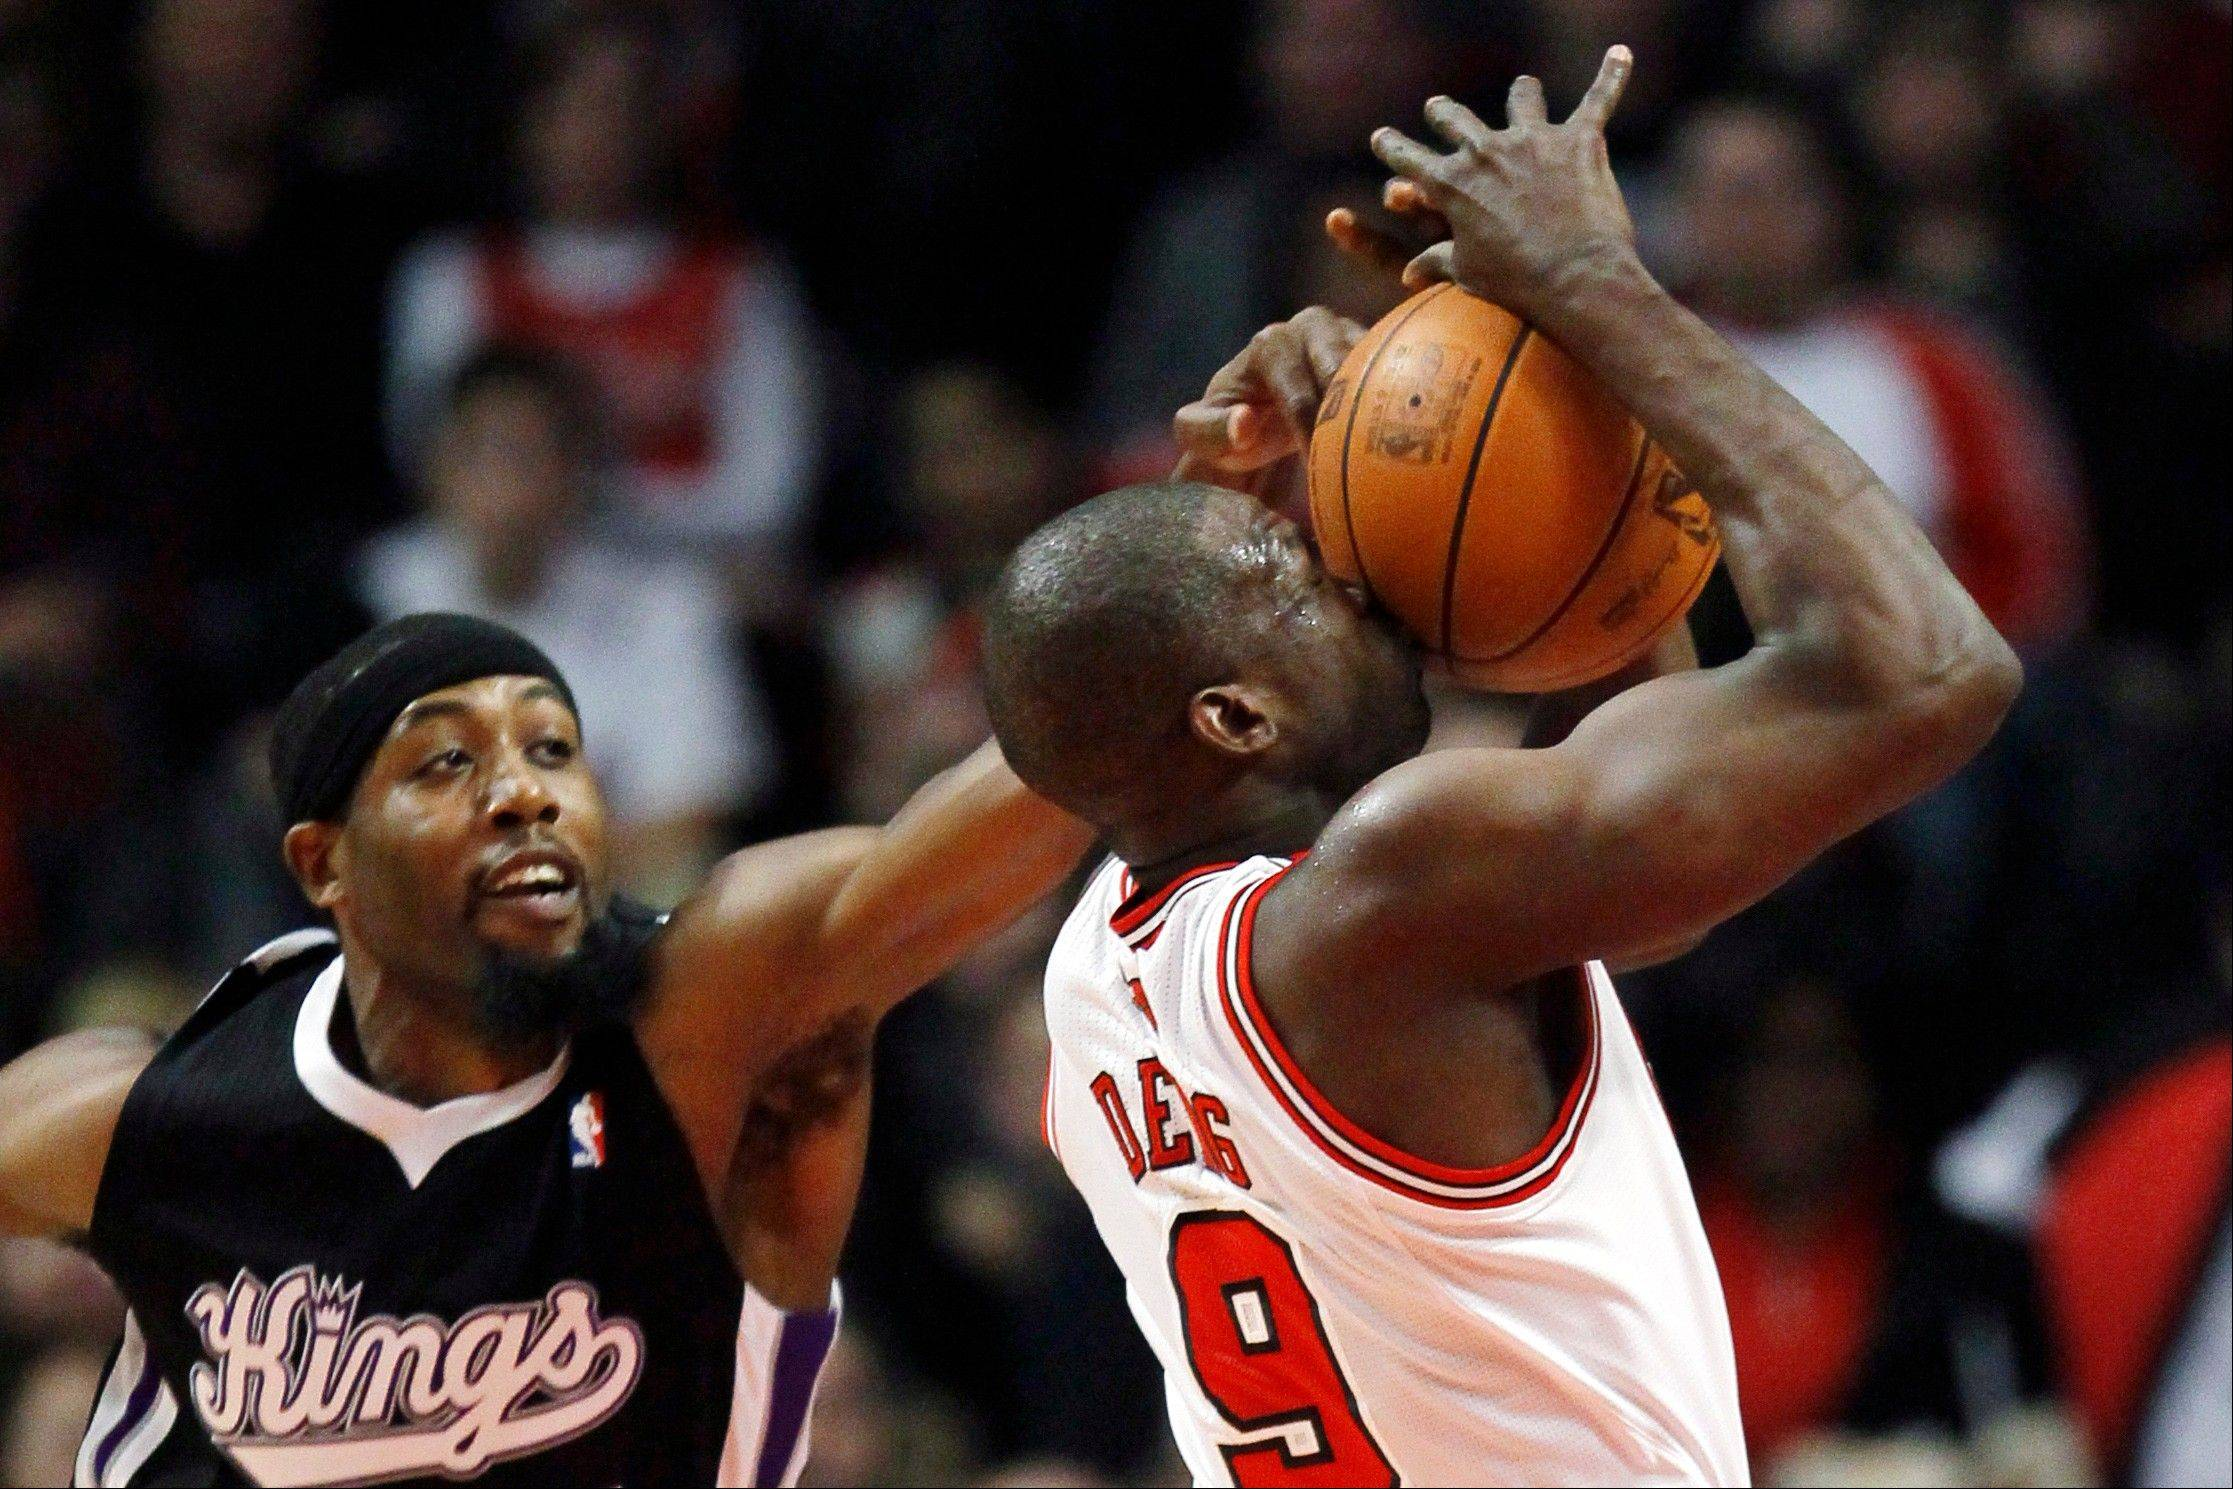 The Kings' John Salmons blocks a shot from the Bulls' Luol Deng on Tuesday at the United Center.